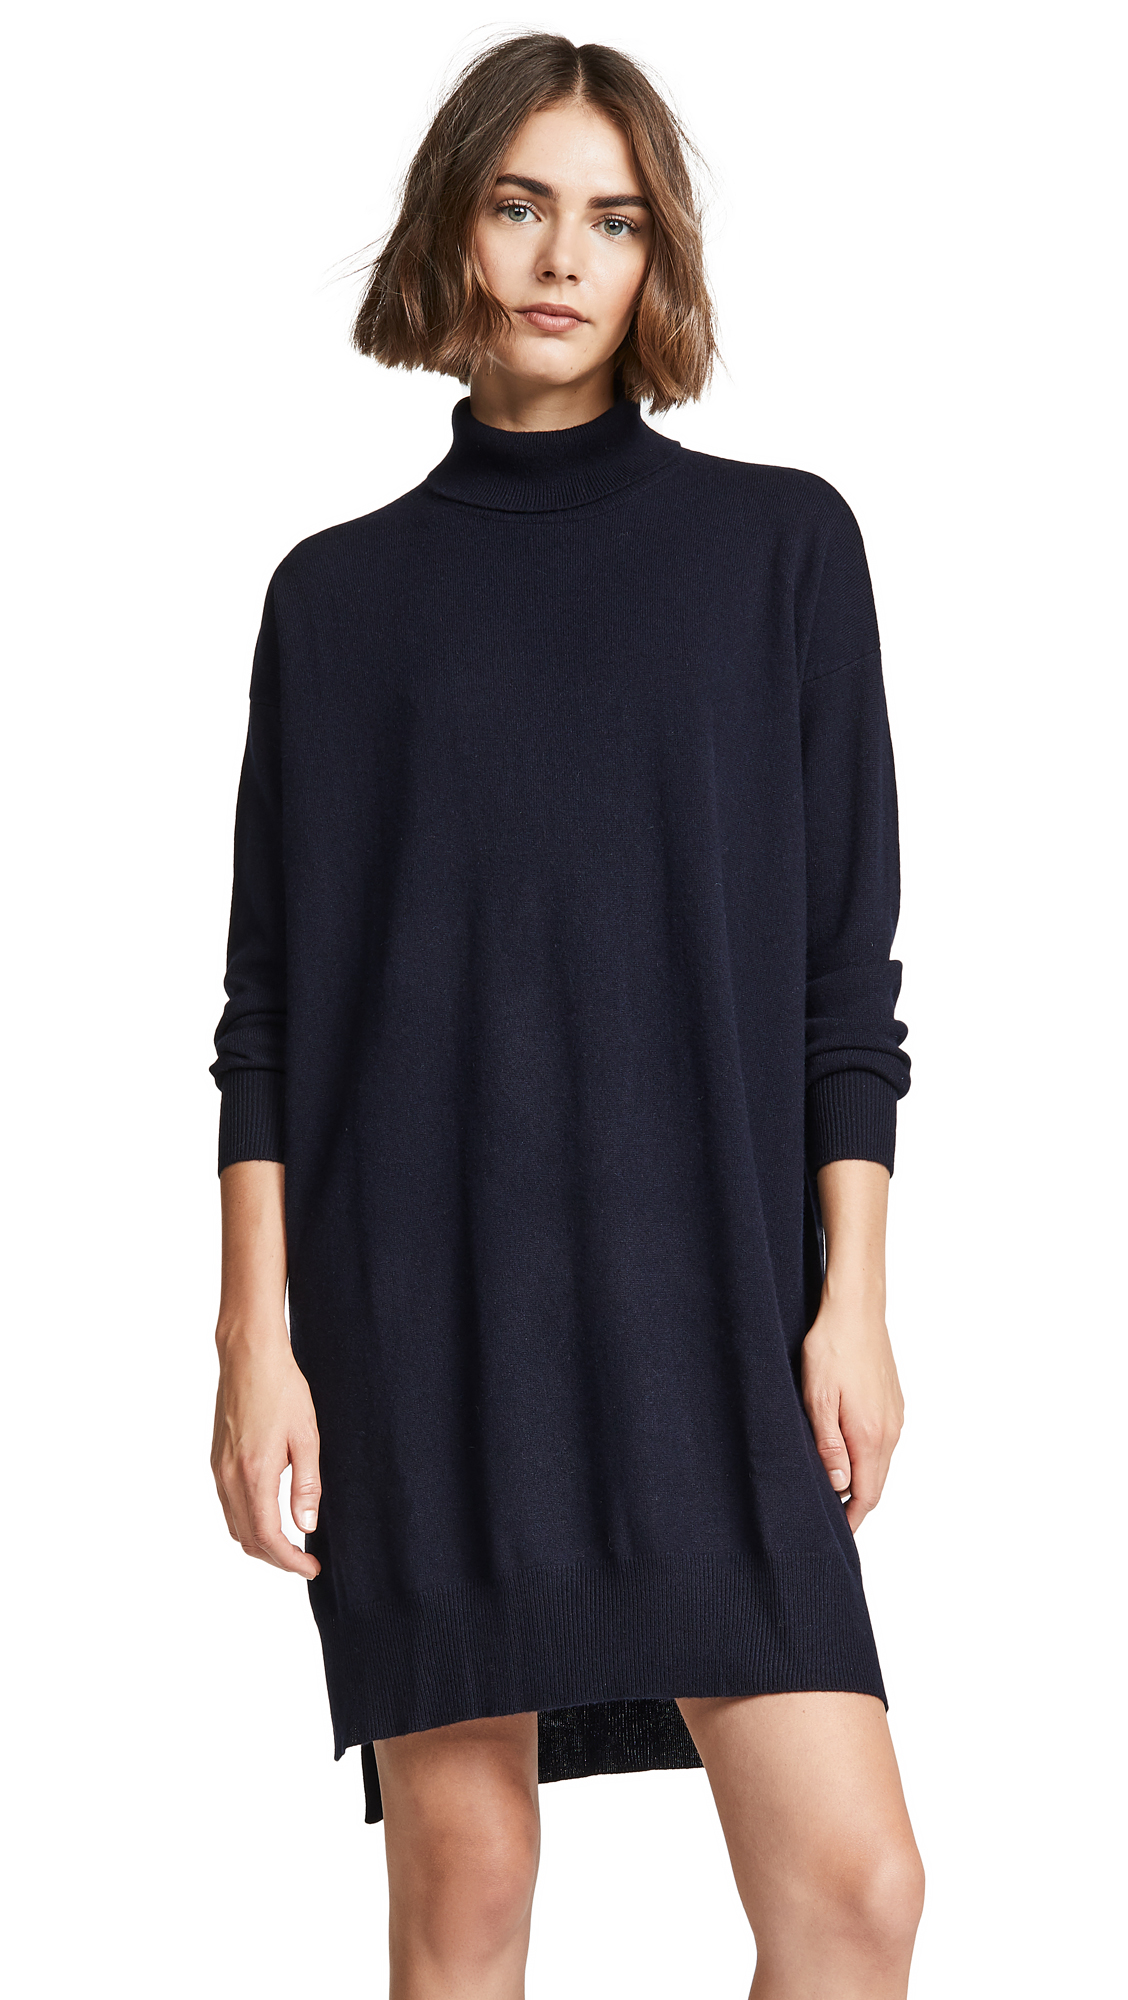 DEMYLEE Eliza Cashmere Dress